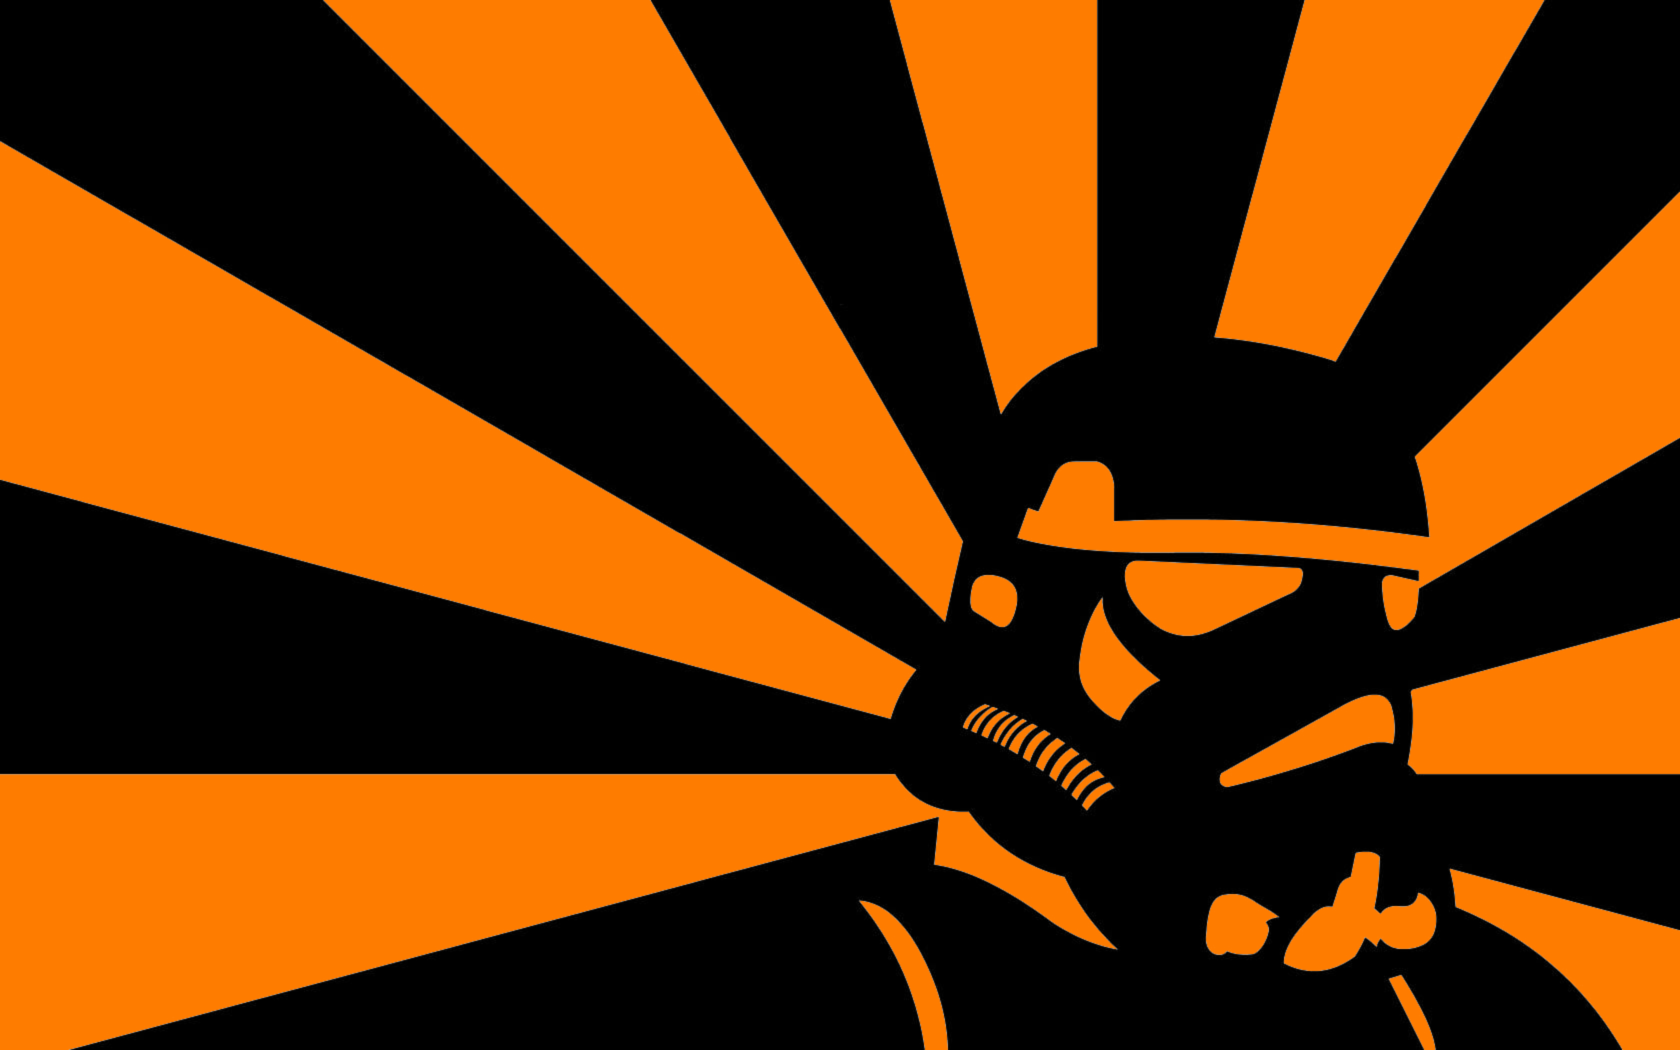 Abstract Vader Star Wars Exclusive HD Wallpapers 1598 1680x1050